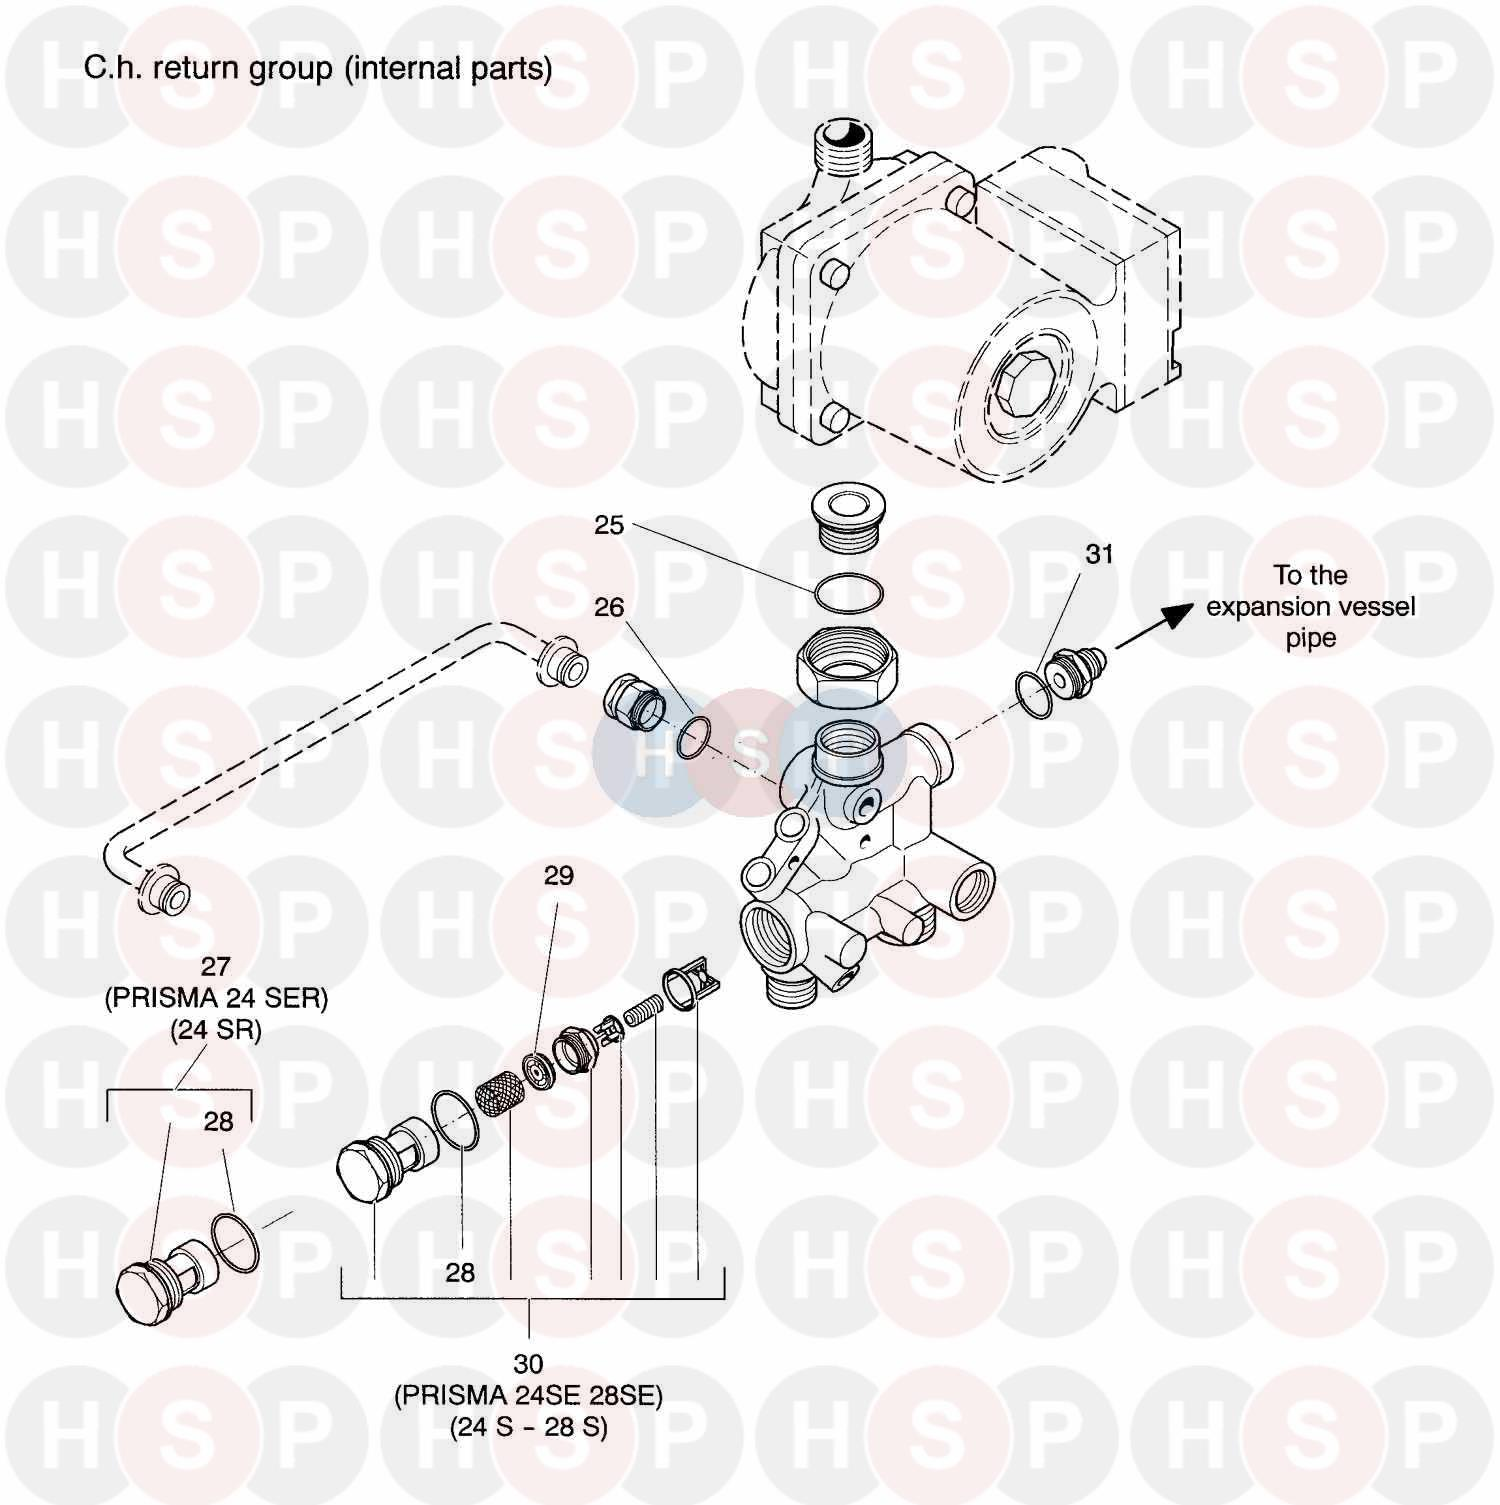 Biasi Prisma 24s 200 Ch Return Groups Diagram Heating Spare Parts Boiler Wiring For